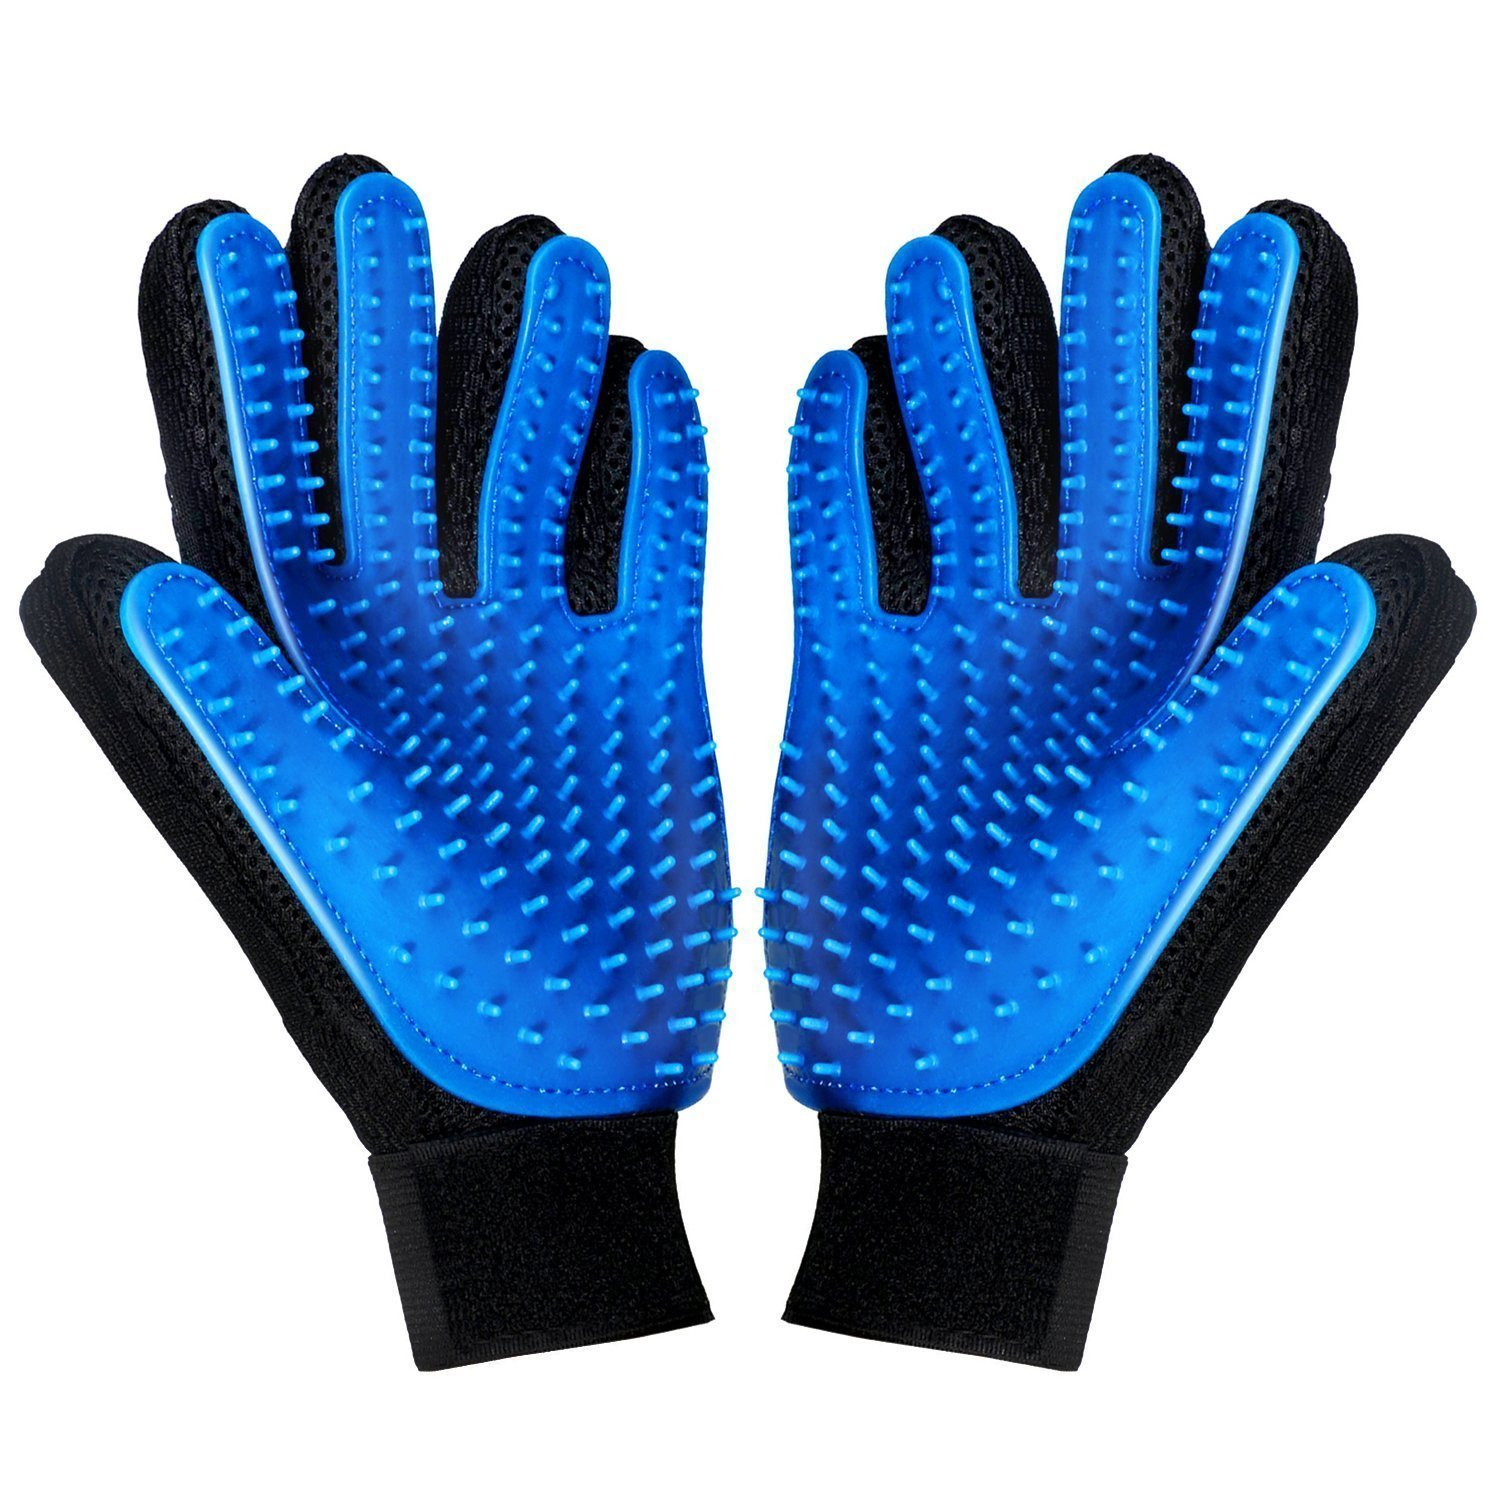 Pet Grooming Glove Left & Right Massage Tool - Gentle Deshedding Brush Glove - Enhanced Five Finger Design - Efficient Pet Hair Remover Mitt - Perfect for Dogs & Cats with Long & Short Fur